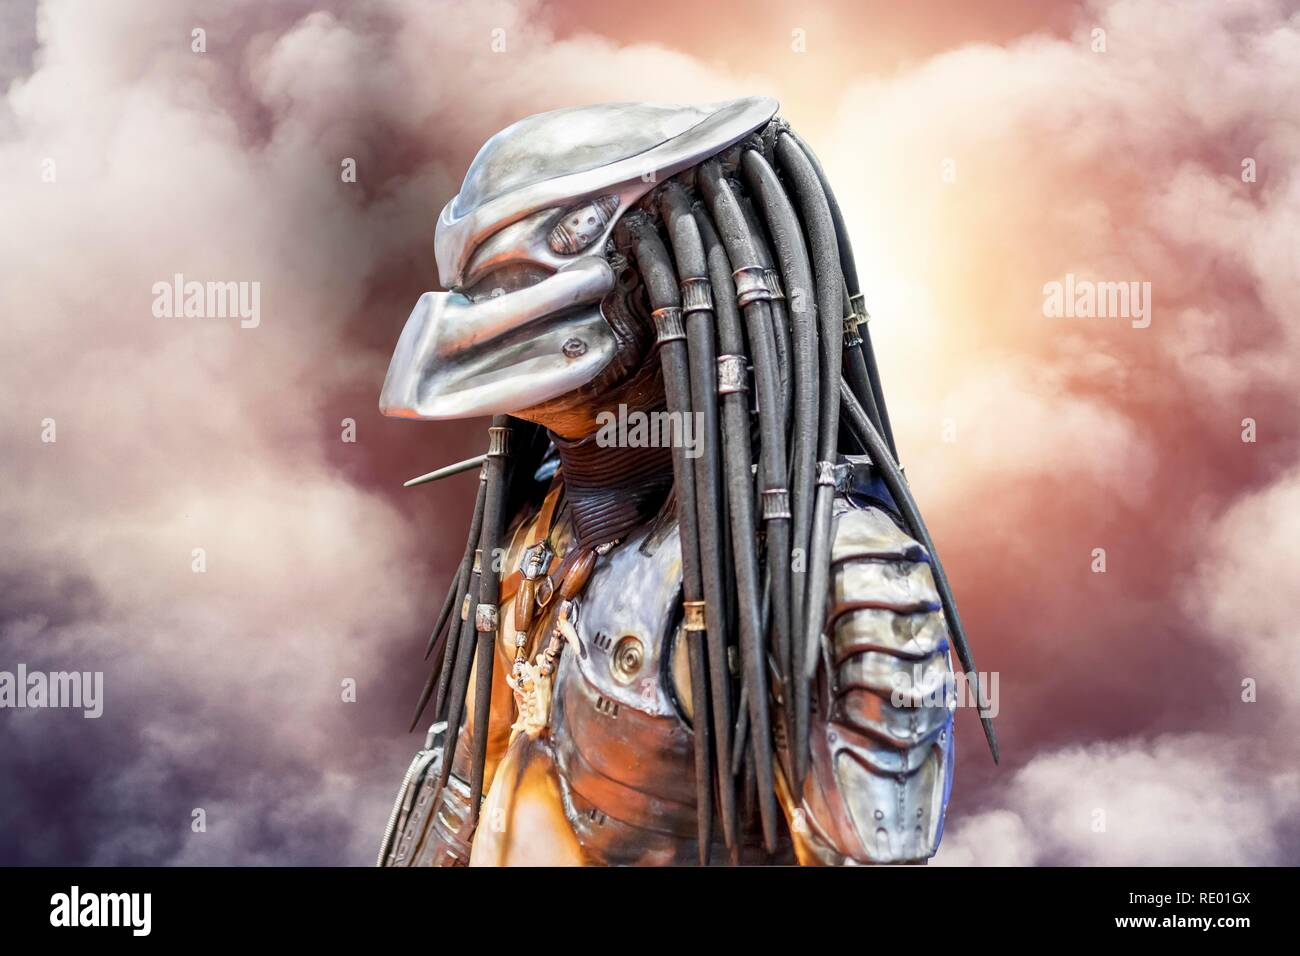 Birmingham, UK - March 17, 2018. Male comicon fan dressed as Twentieth Century Fox character, Predator in cosplay fancy dress at a comic convention. - Stock Image